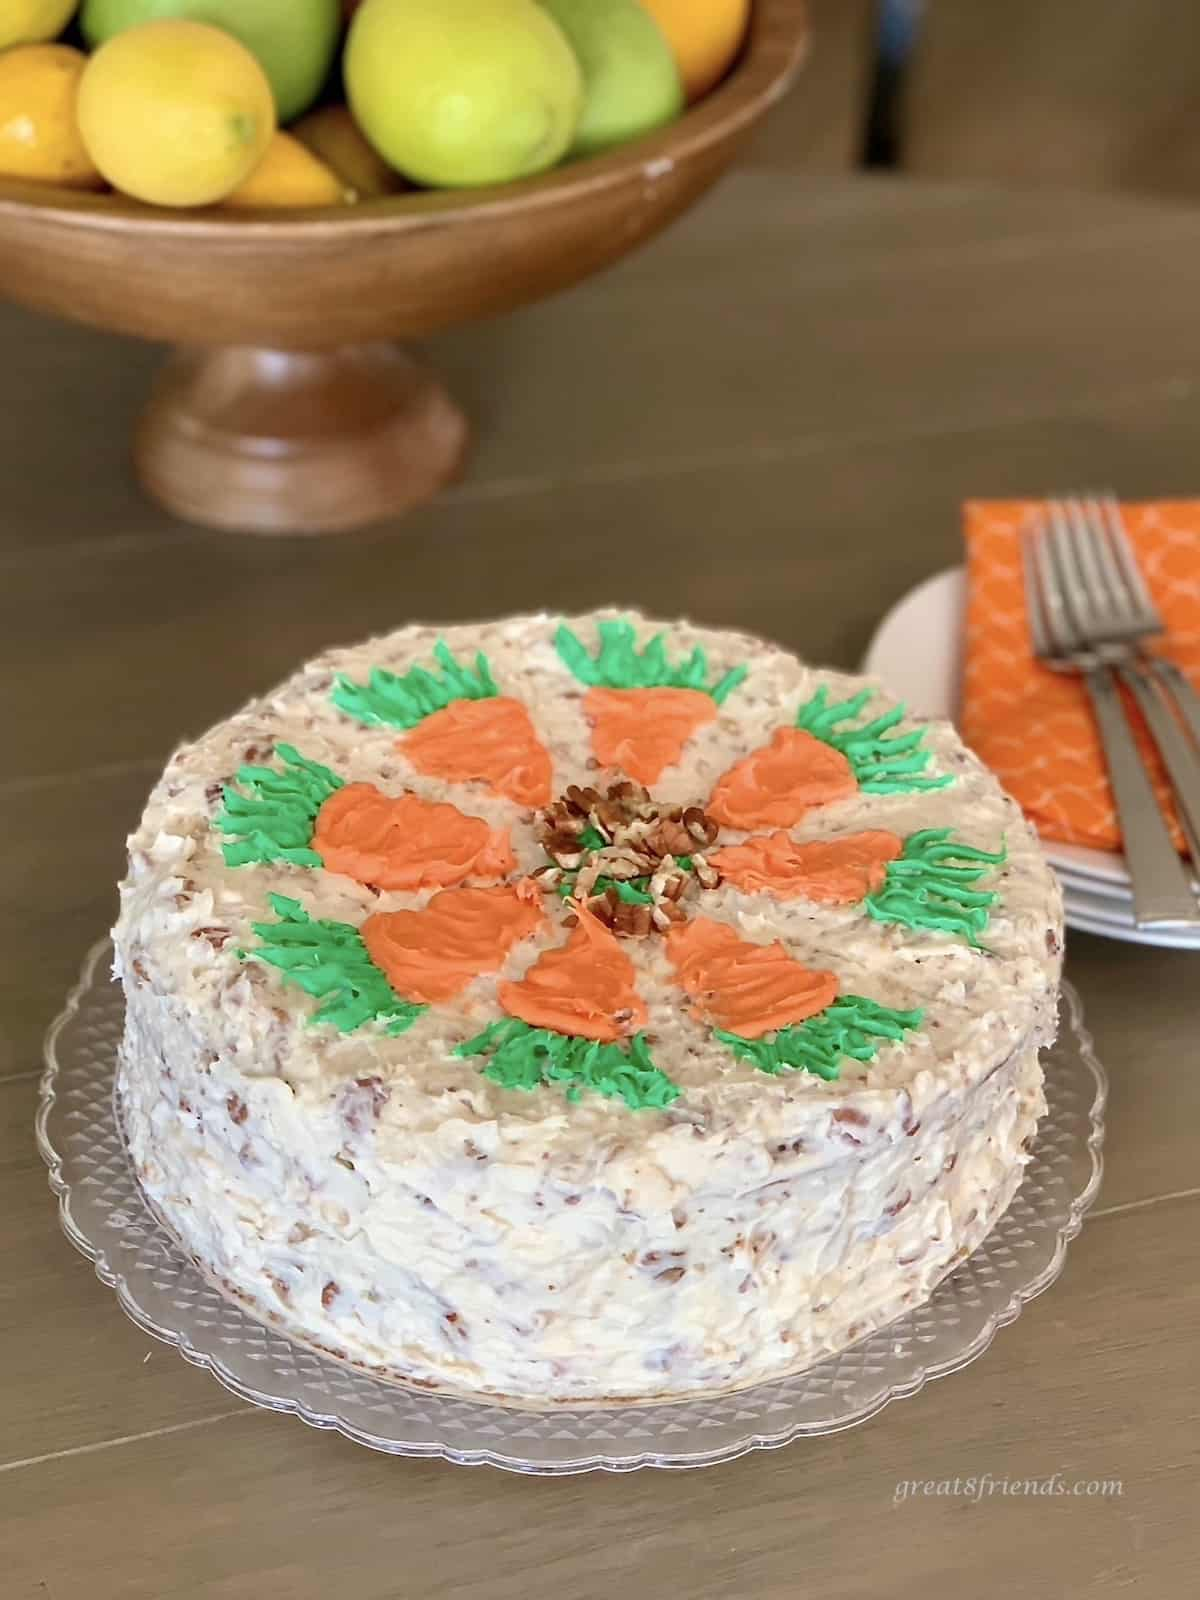 A carrot cake decorated with orange carrots topped with green icing carrot tops with a bowl of lemons in the background.